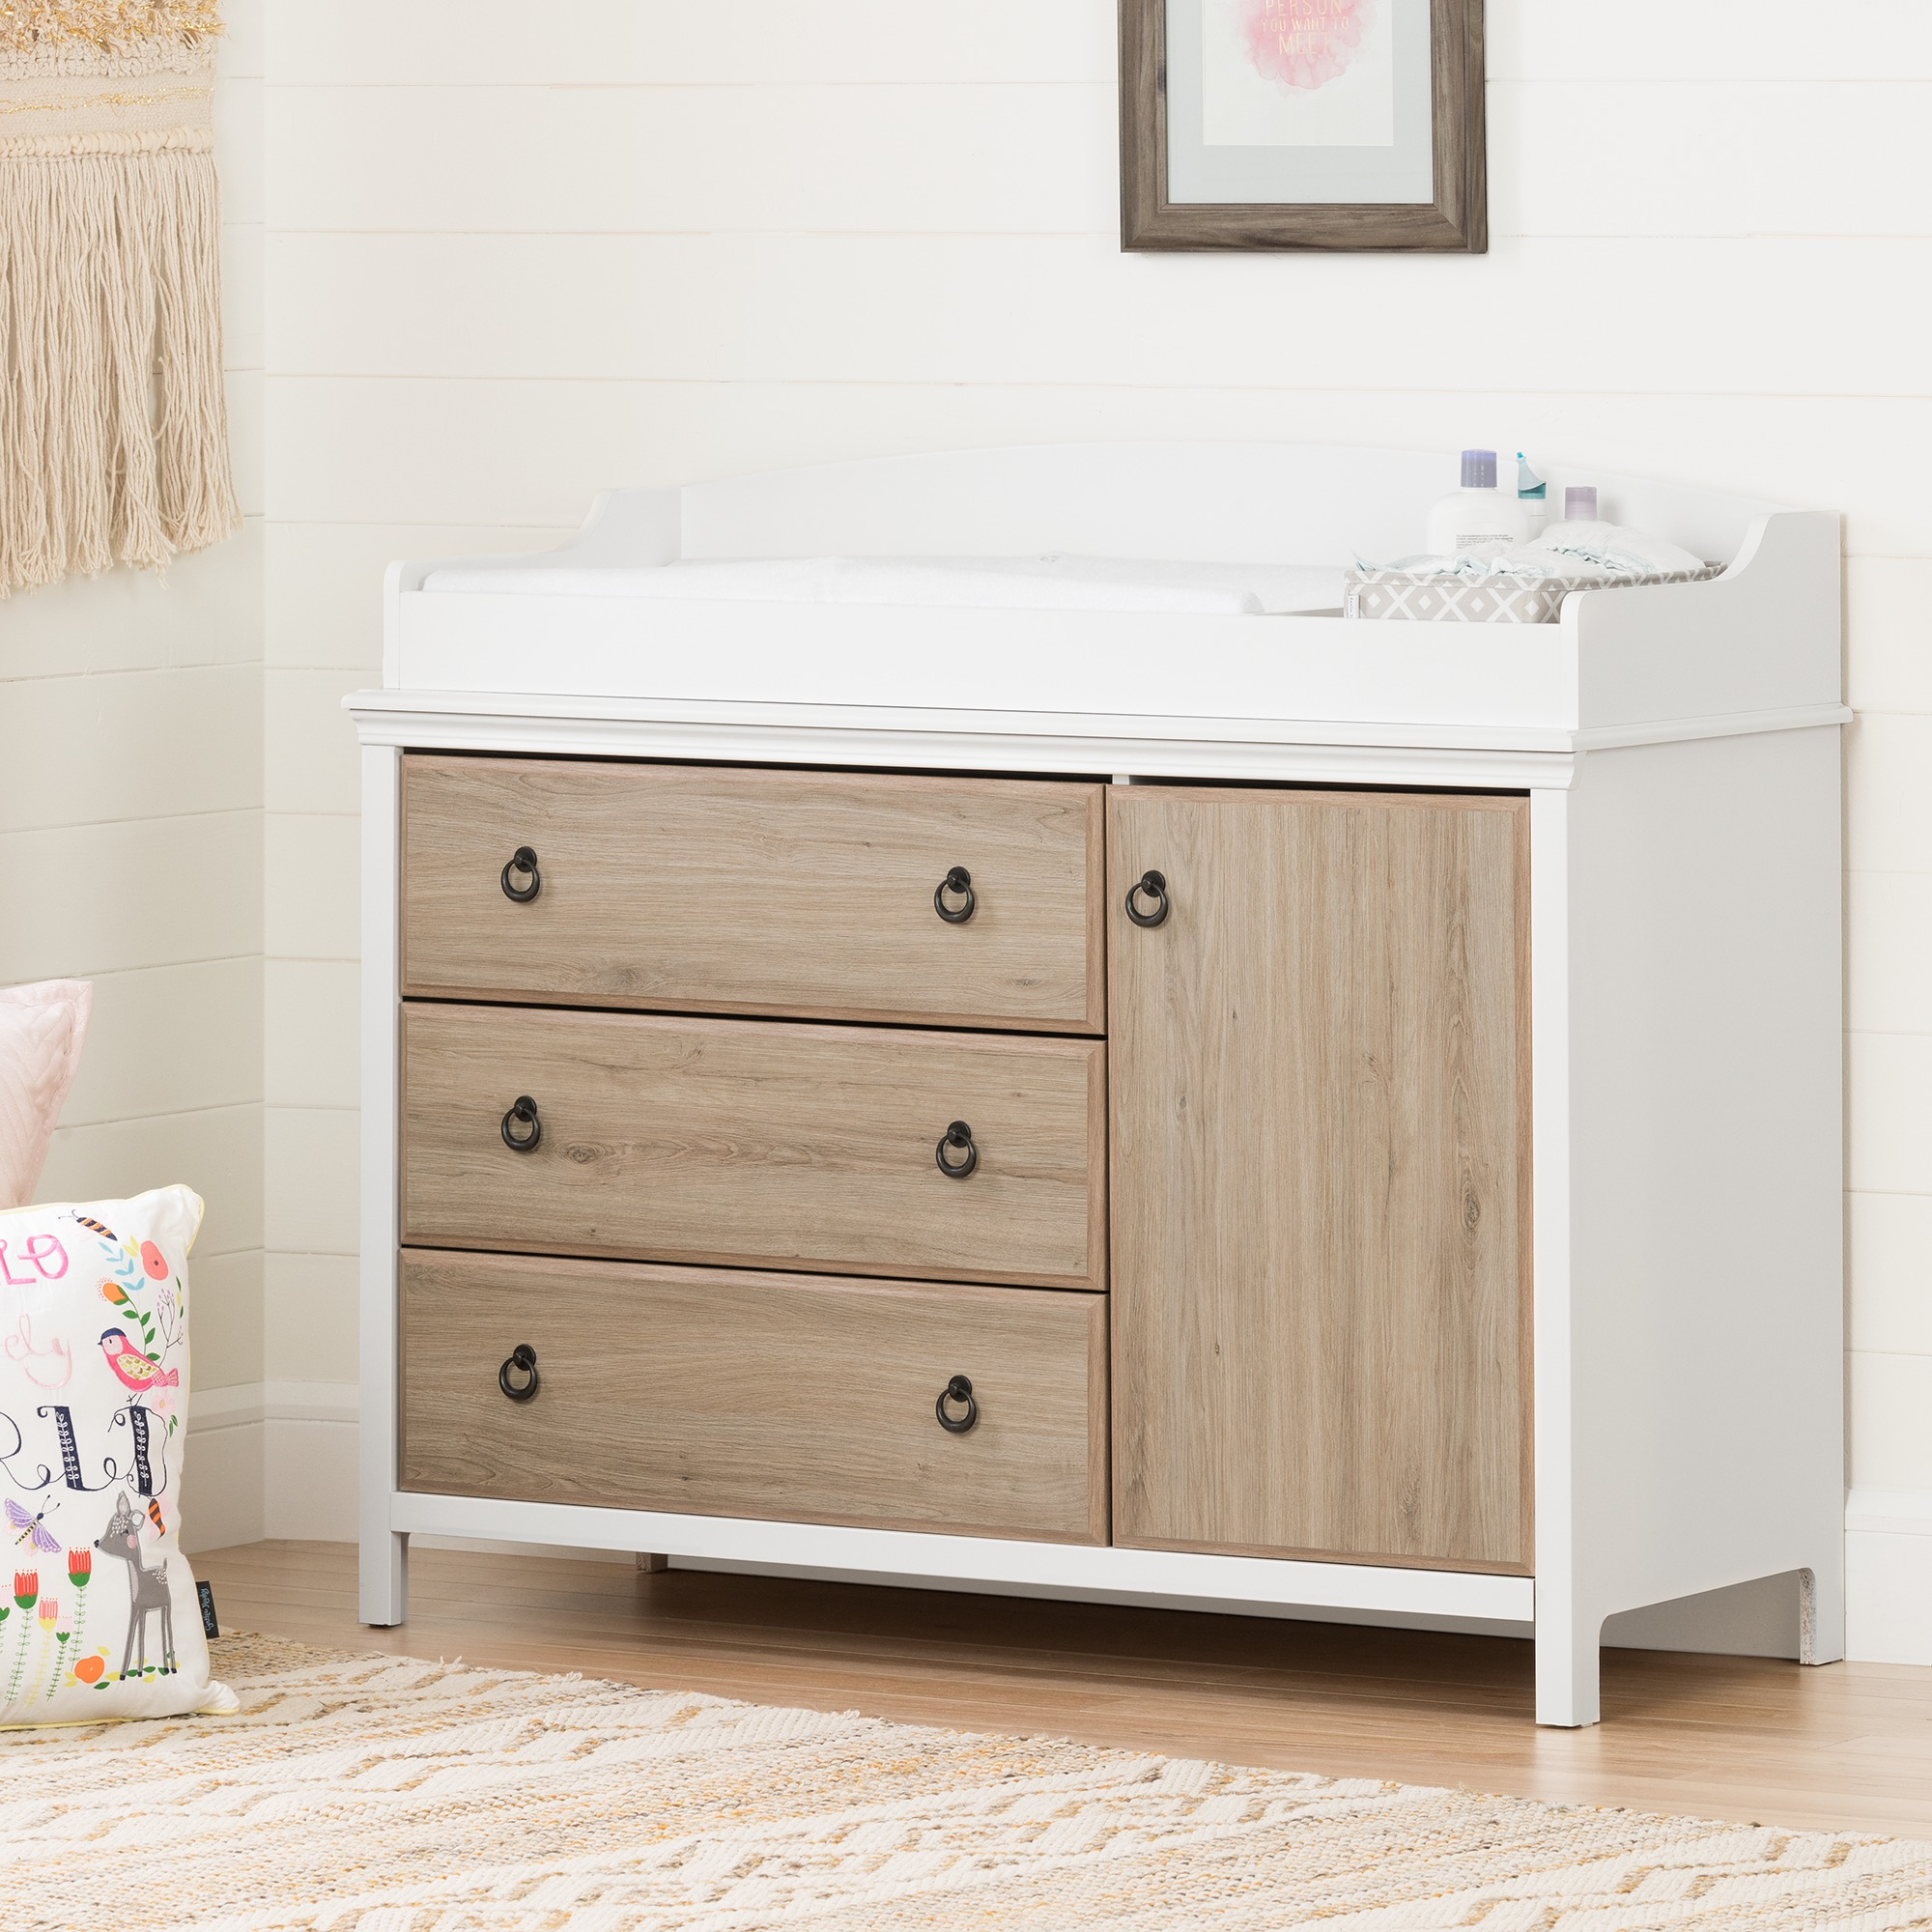 South Shore Catimini Changing Table with Removable Changing Station, Pure White and Rustic Oak by South Shore Furniture